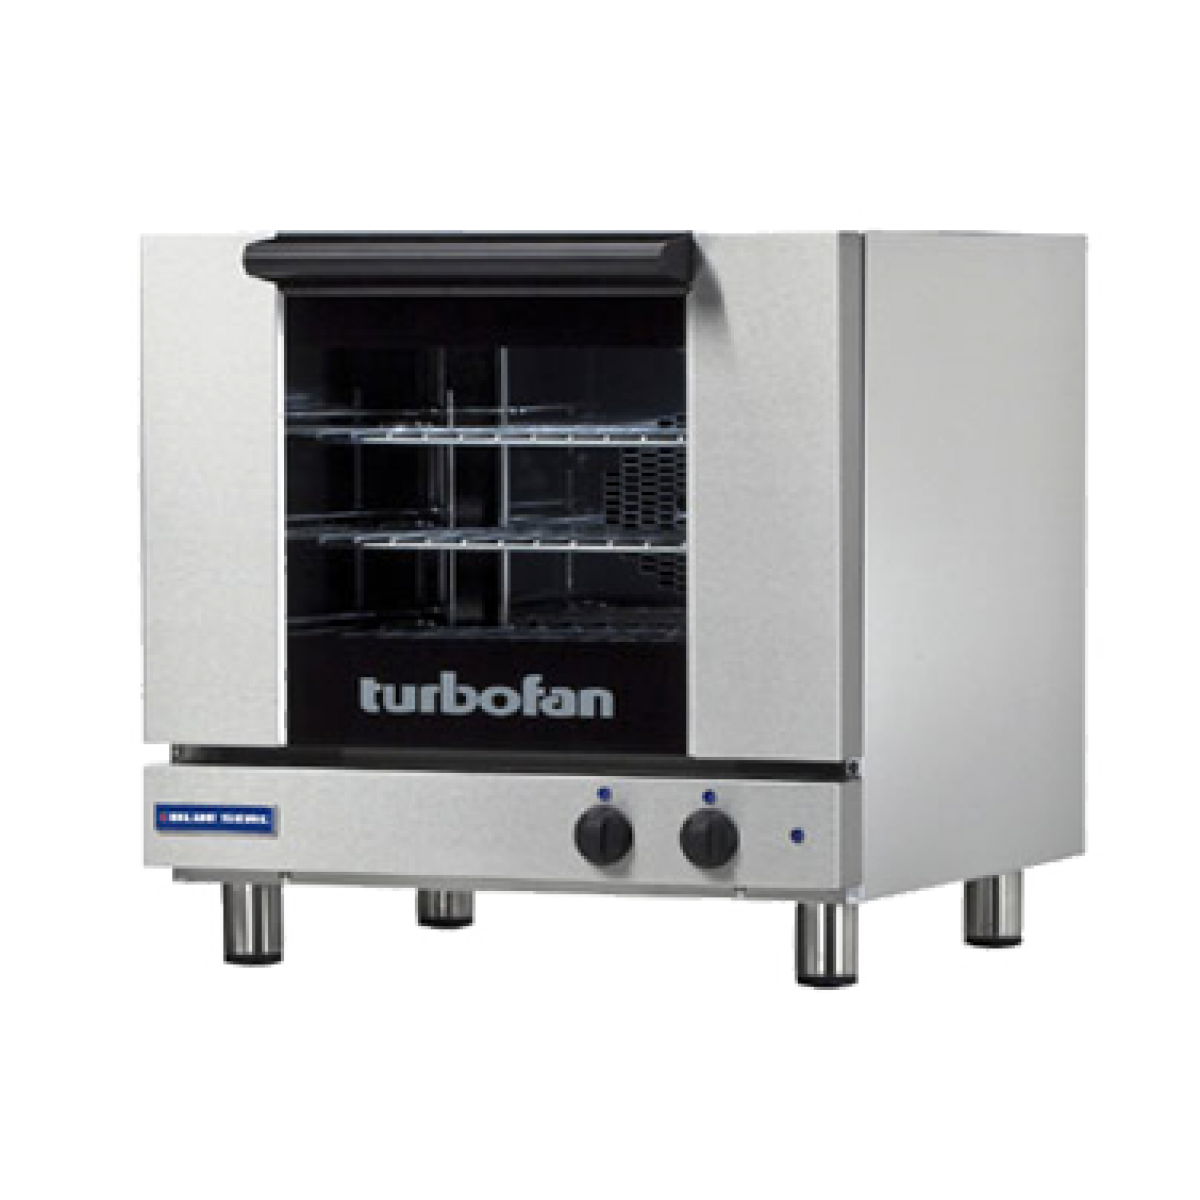 Turbofan Convection Oven, electric, countertop, compact 24